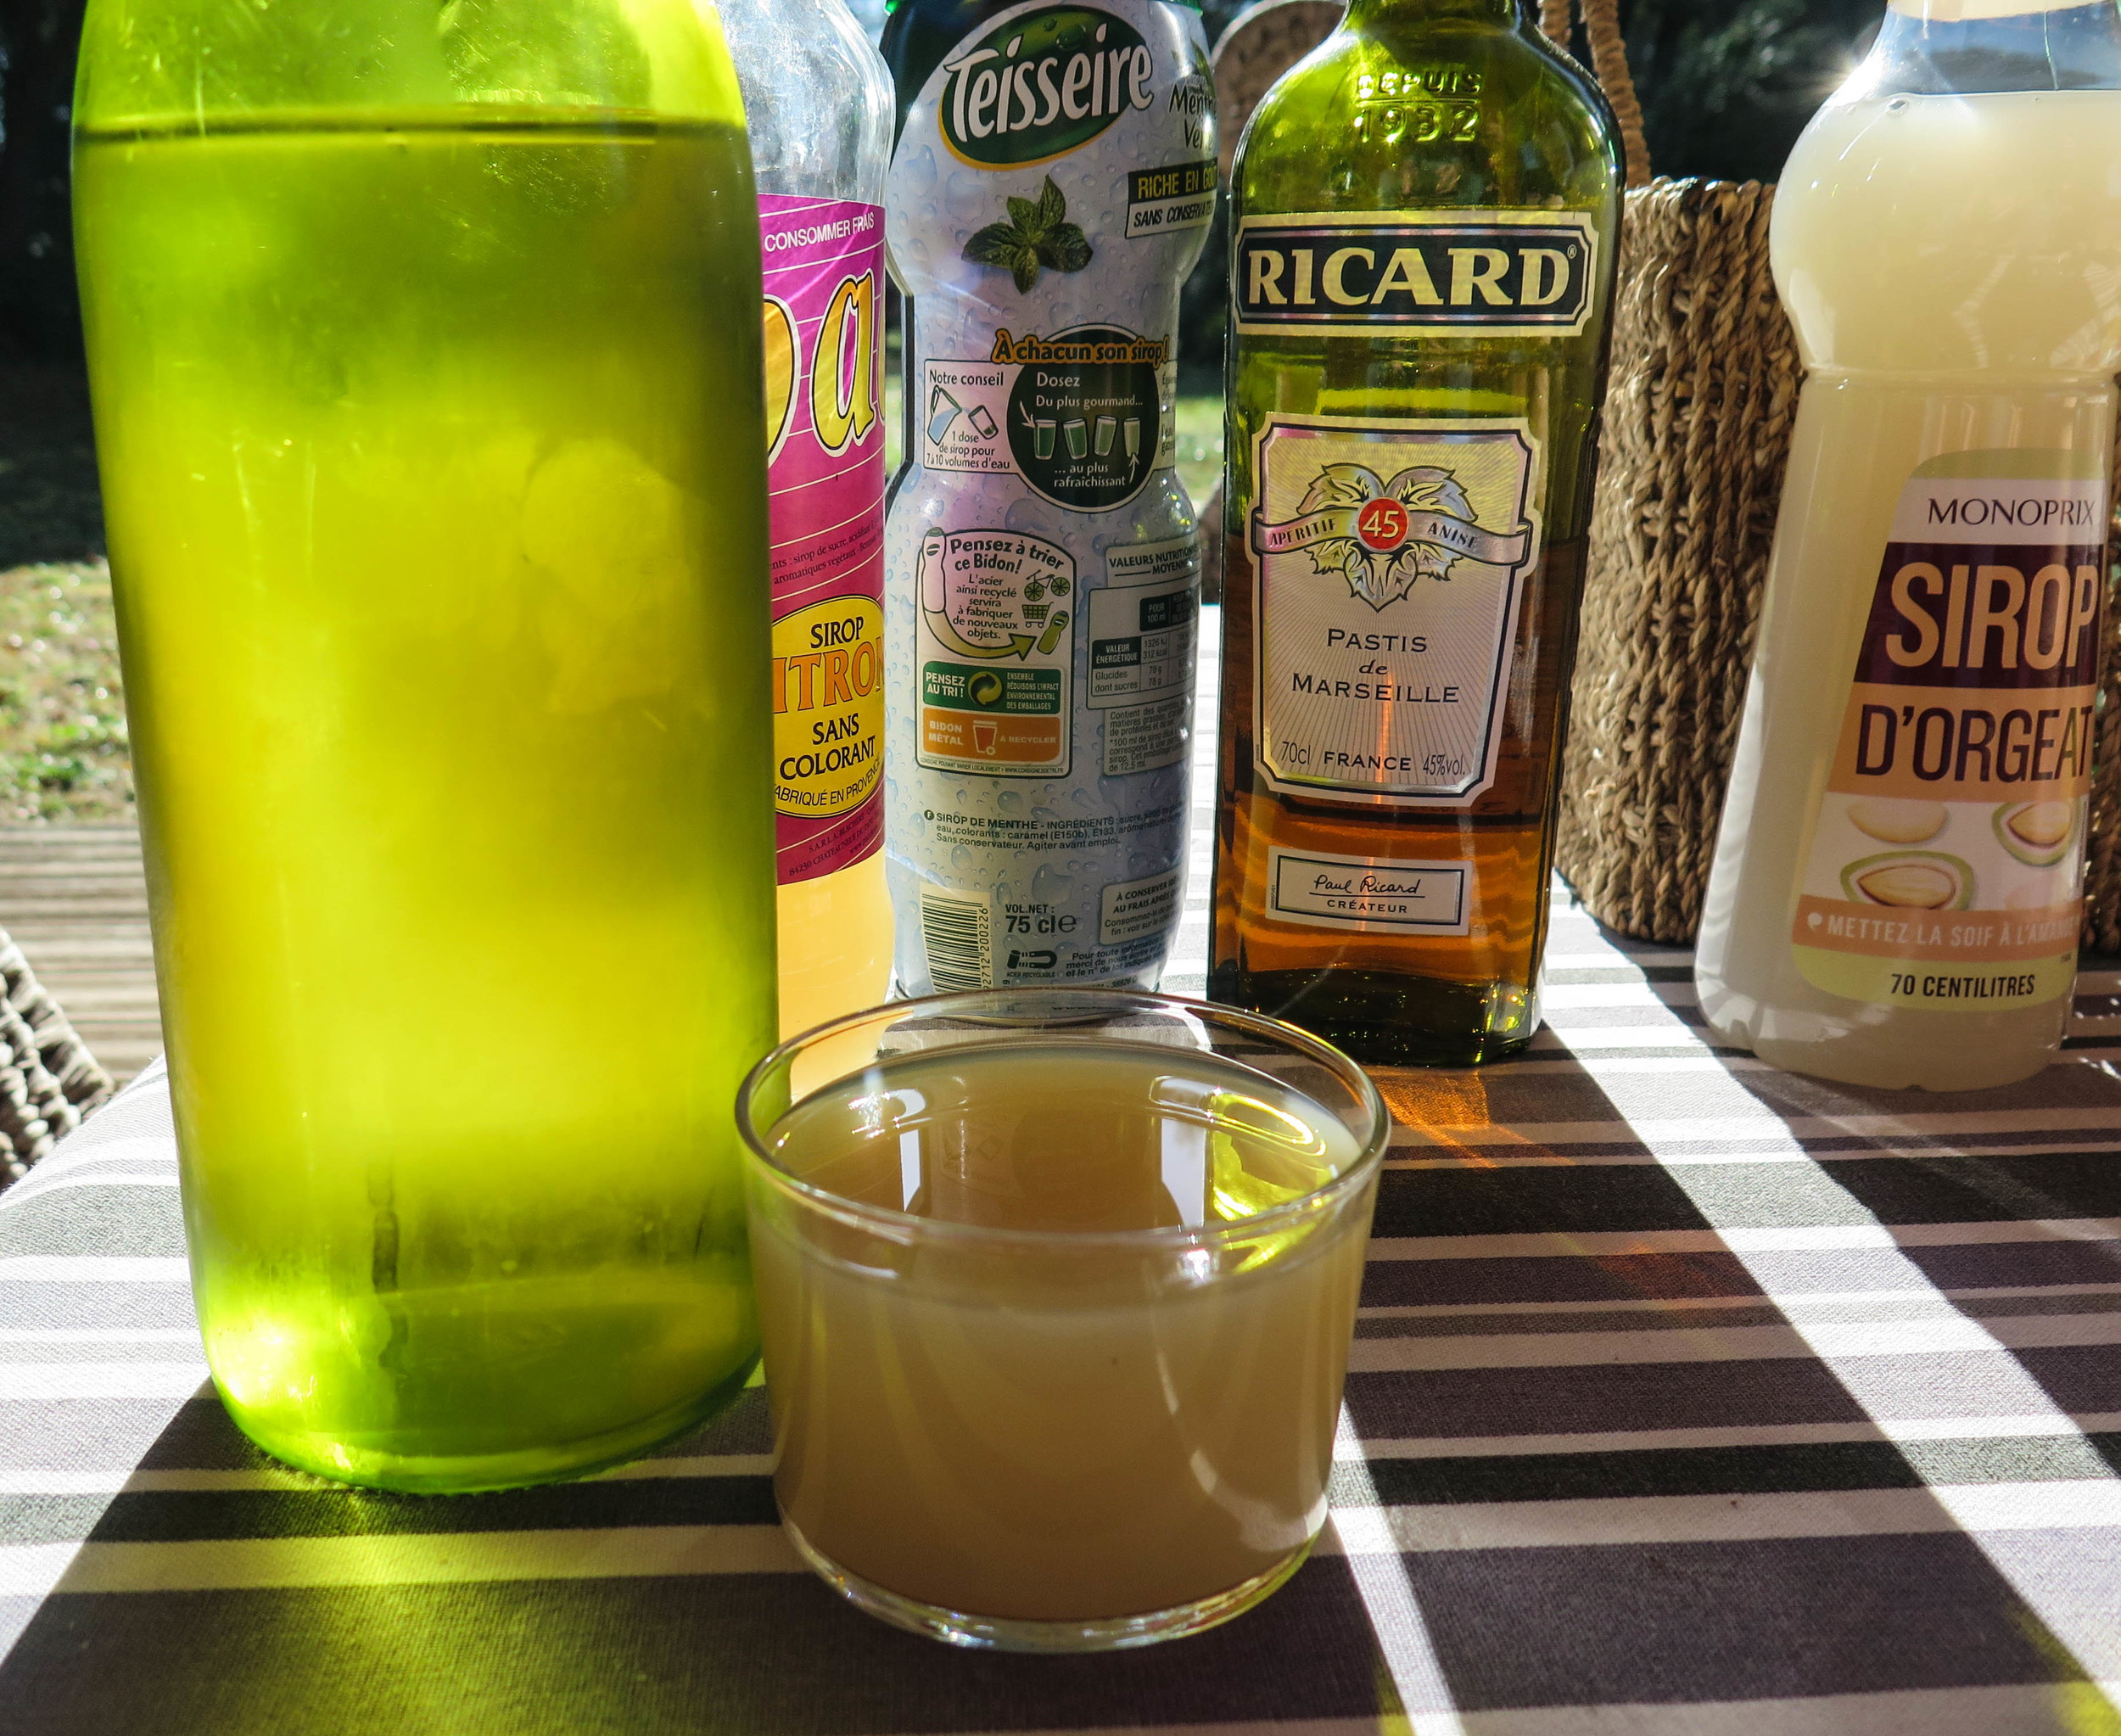 Pastis is a French aperitif that originated in Marseille. In Provence it is also common to drink water with a small amount of flavored syrup in the bottom of the glass. Our favorite was almond flavor with sparkling water.